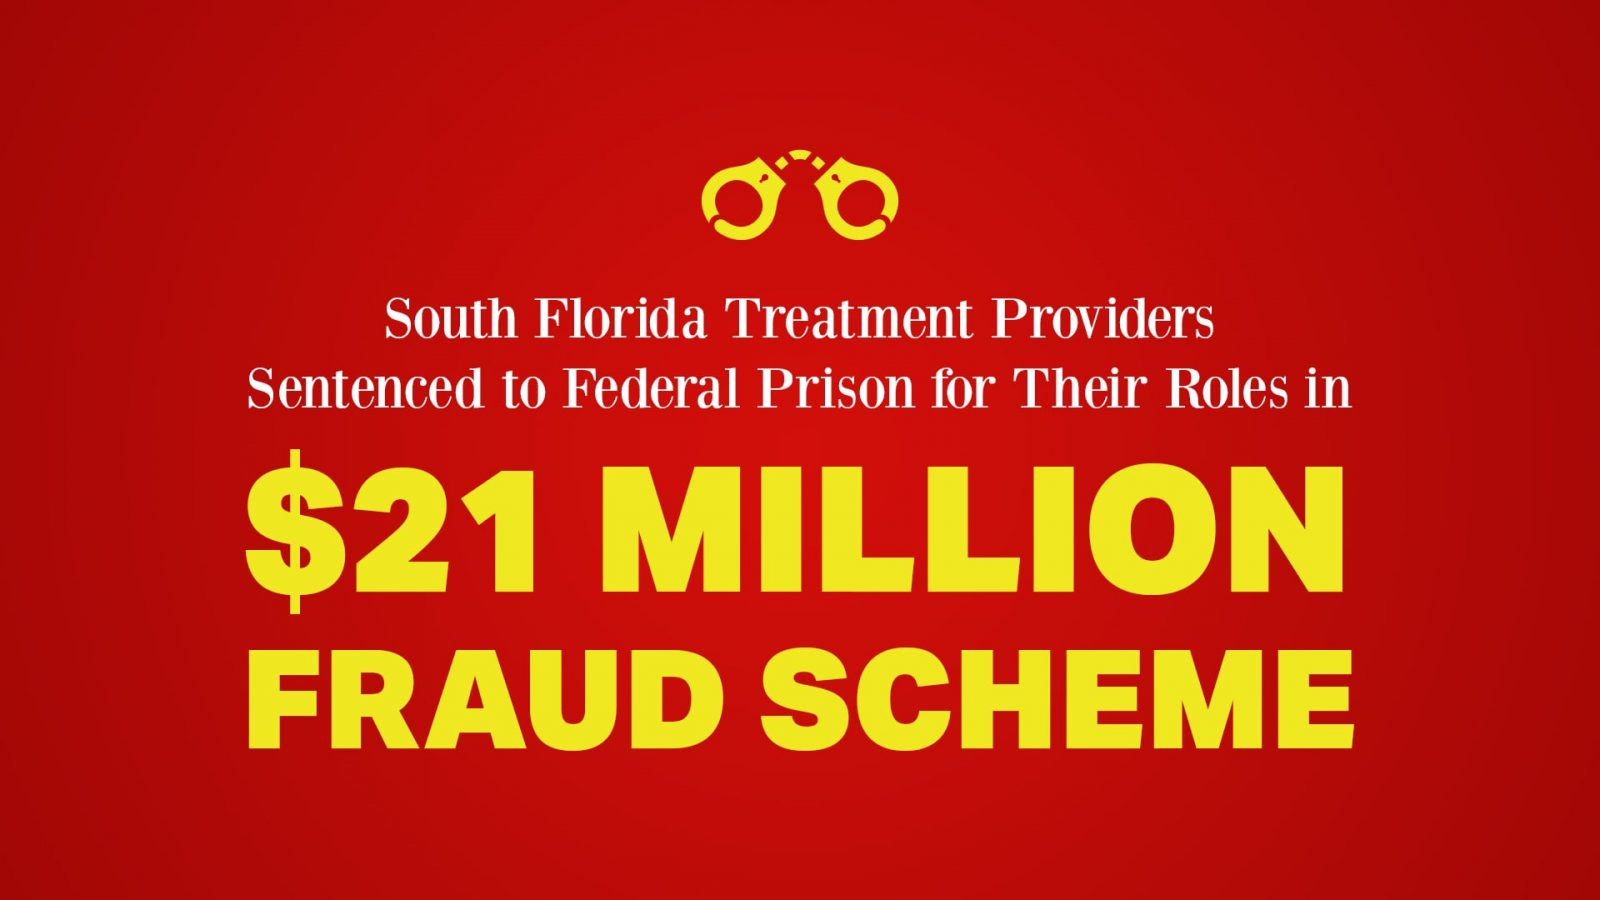 South Florida Treatment Providers Sentenced to Federal Prison for Their Roles in $21 Million Fraud Scheme